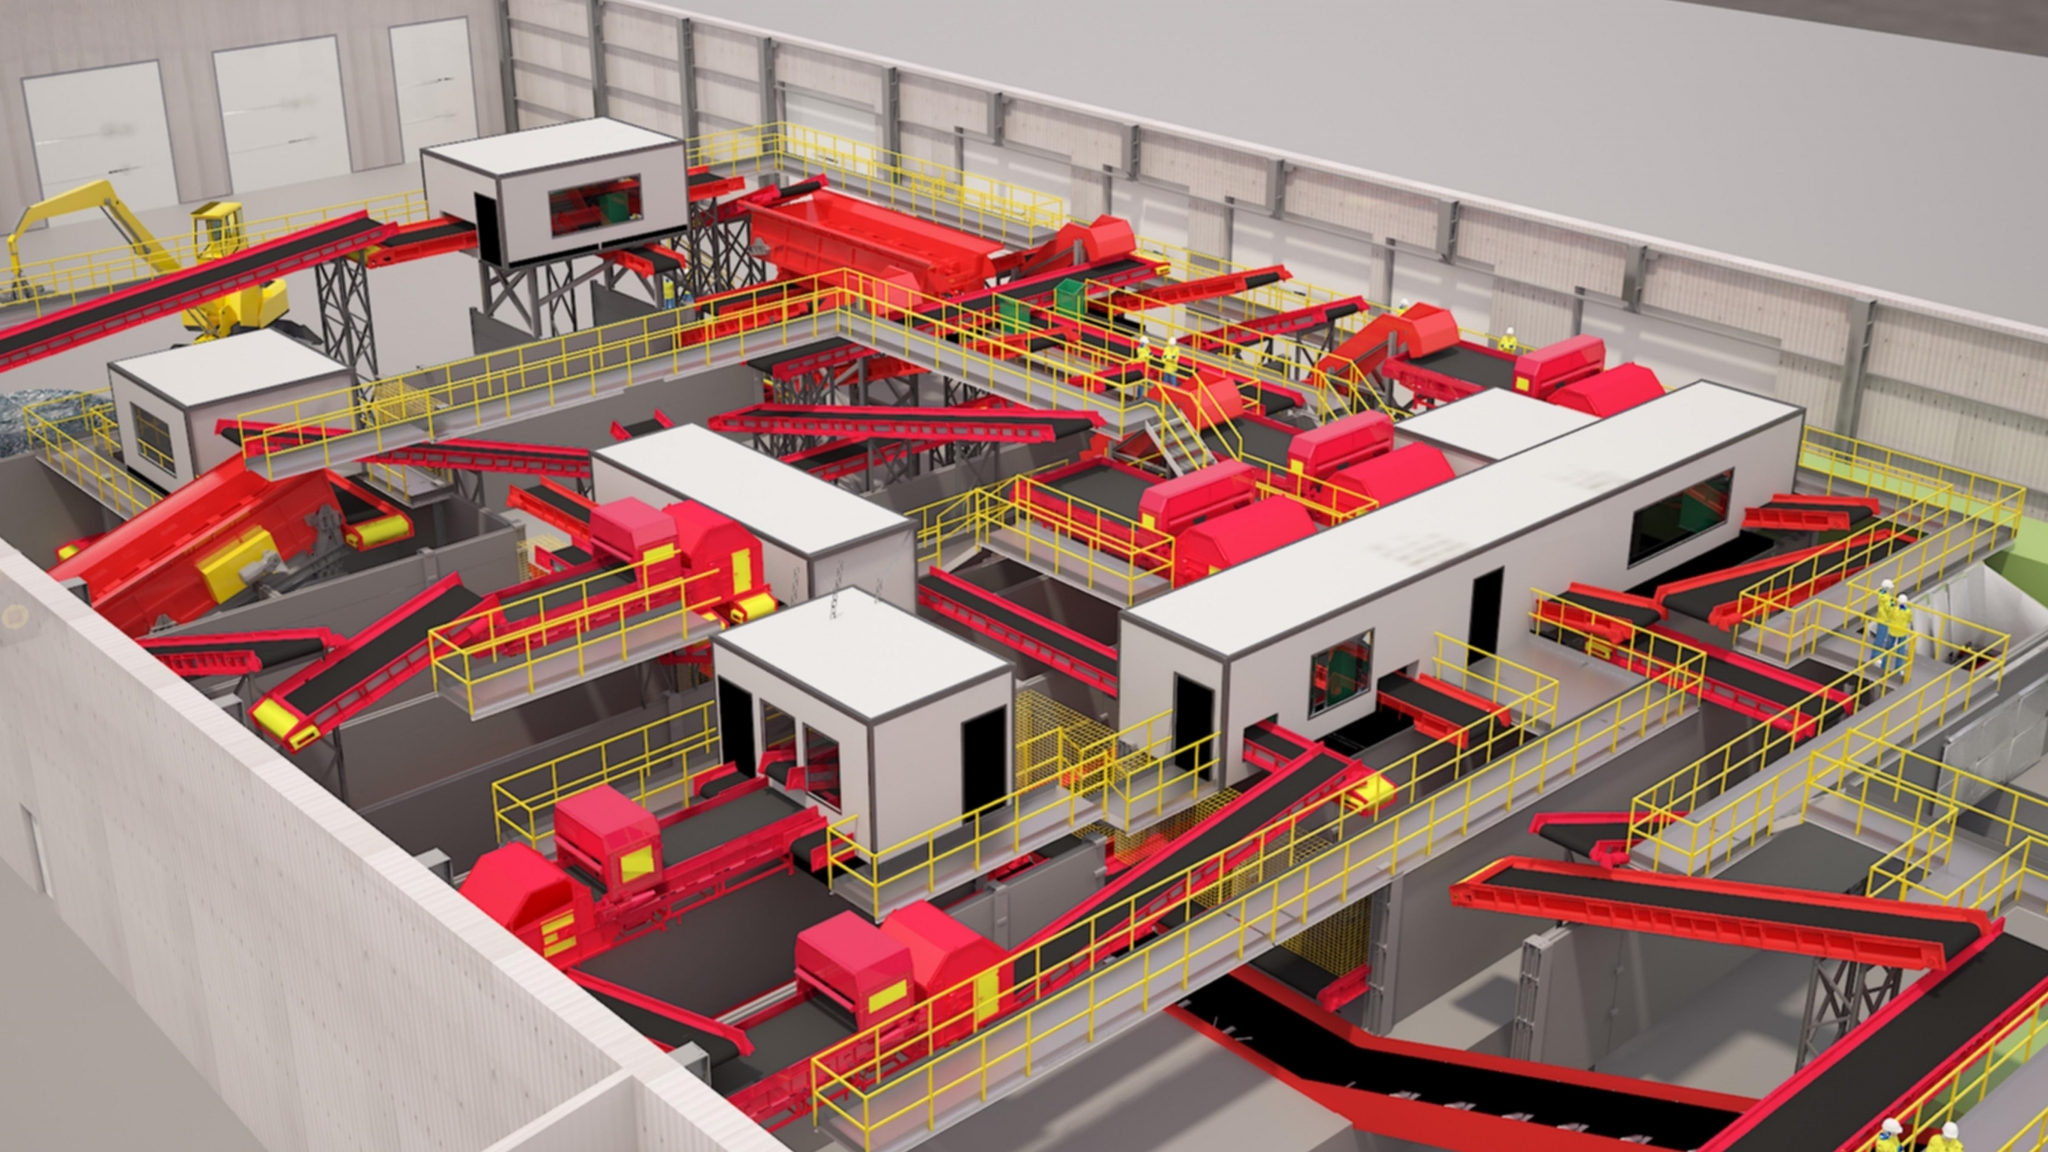 Hills develops new Materials Recover Facility (MRF) for Wiltshire